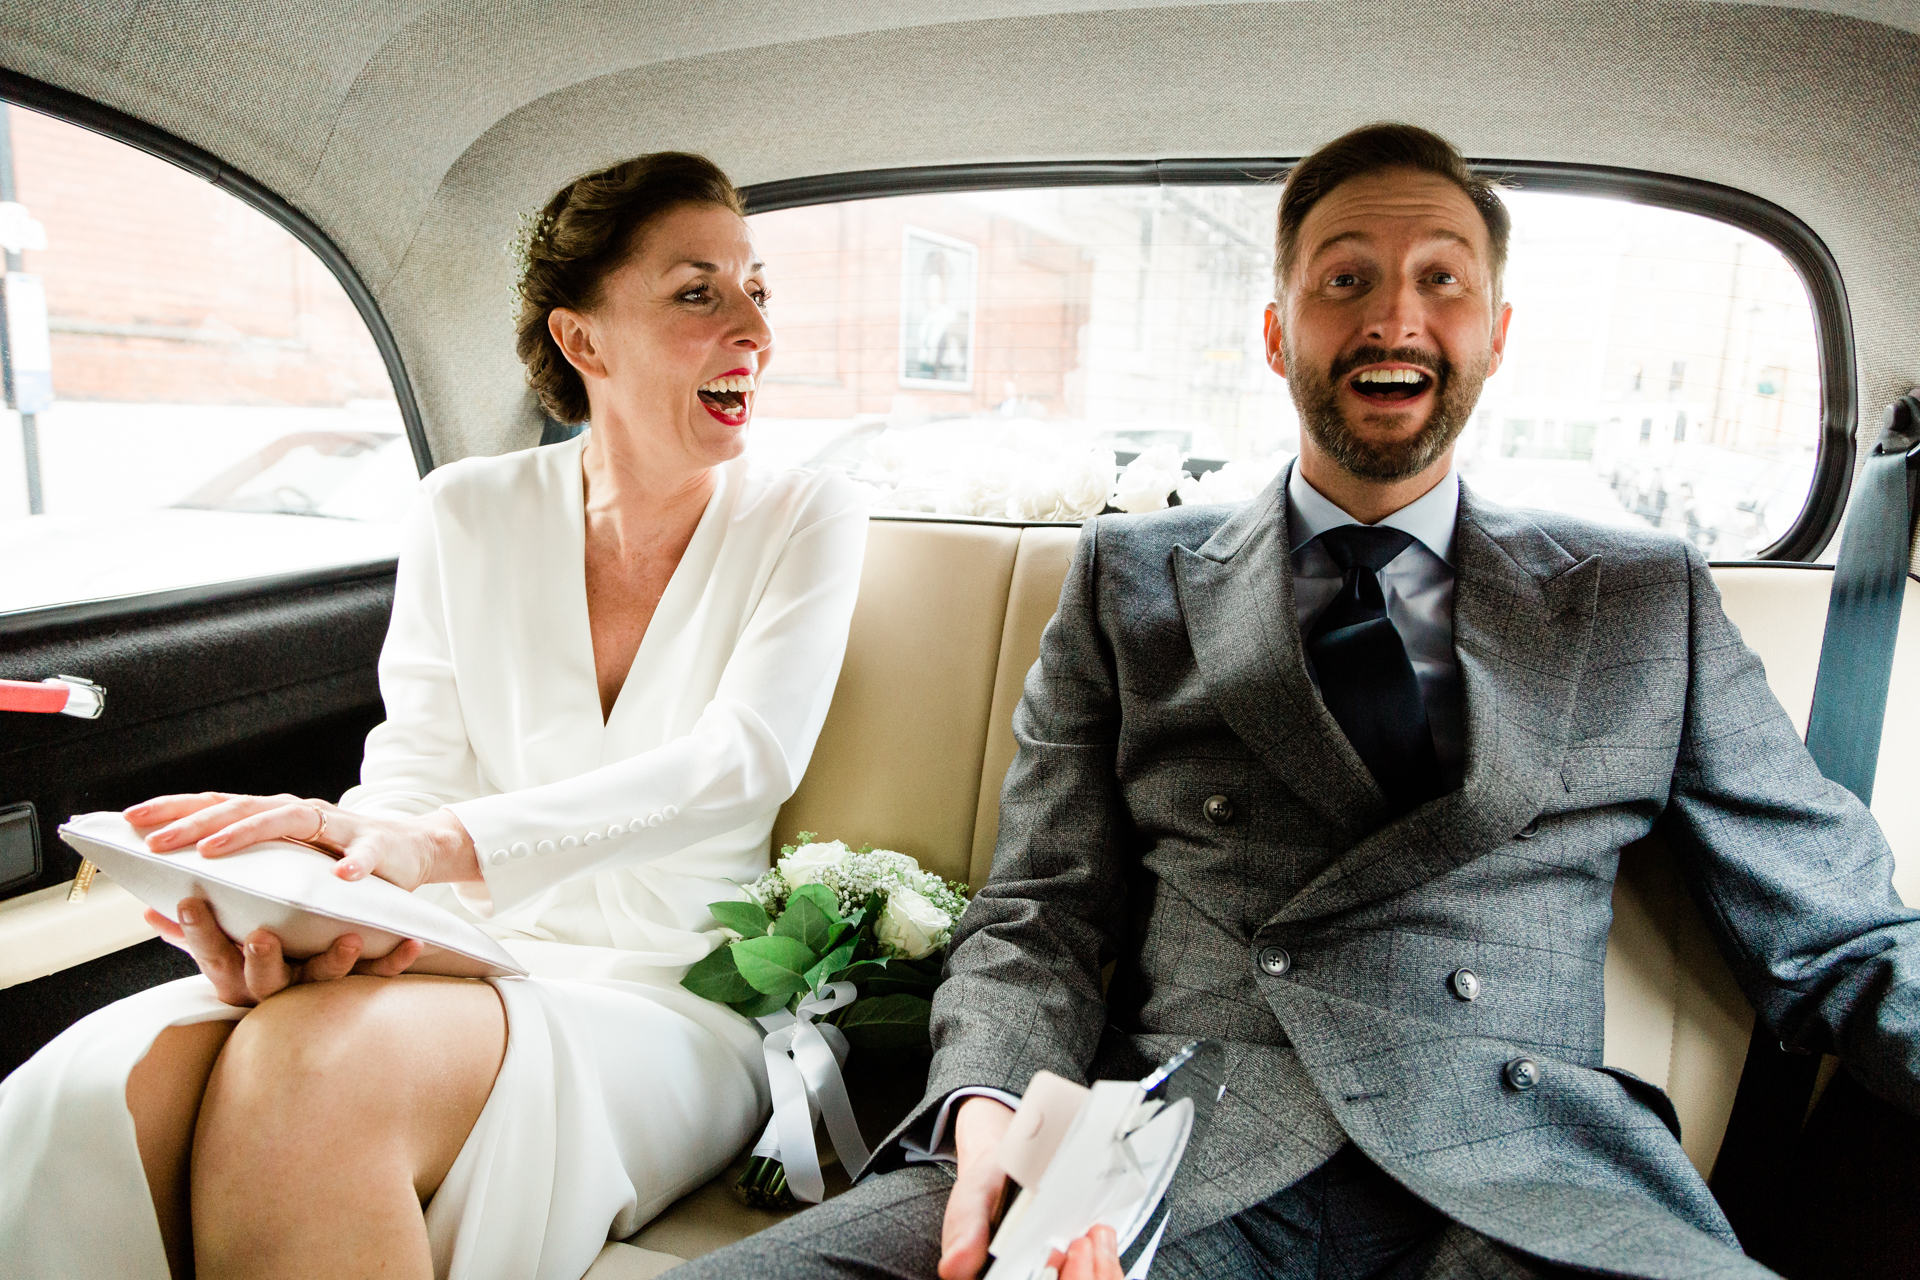 Central London Wedding Elopement Car Ride Image | Journeying with them to the reception venue, smiles and happiness all around now that they are officially married